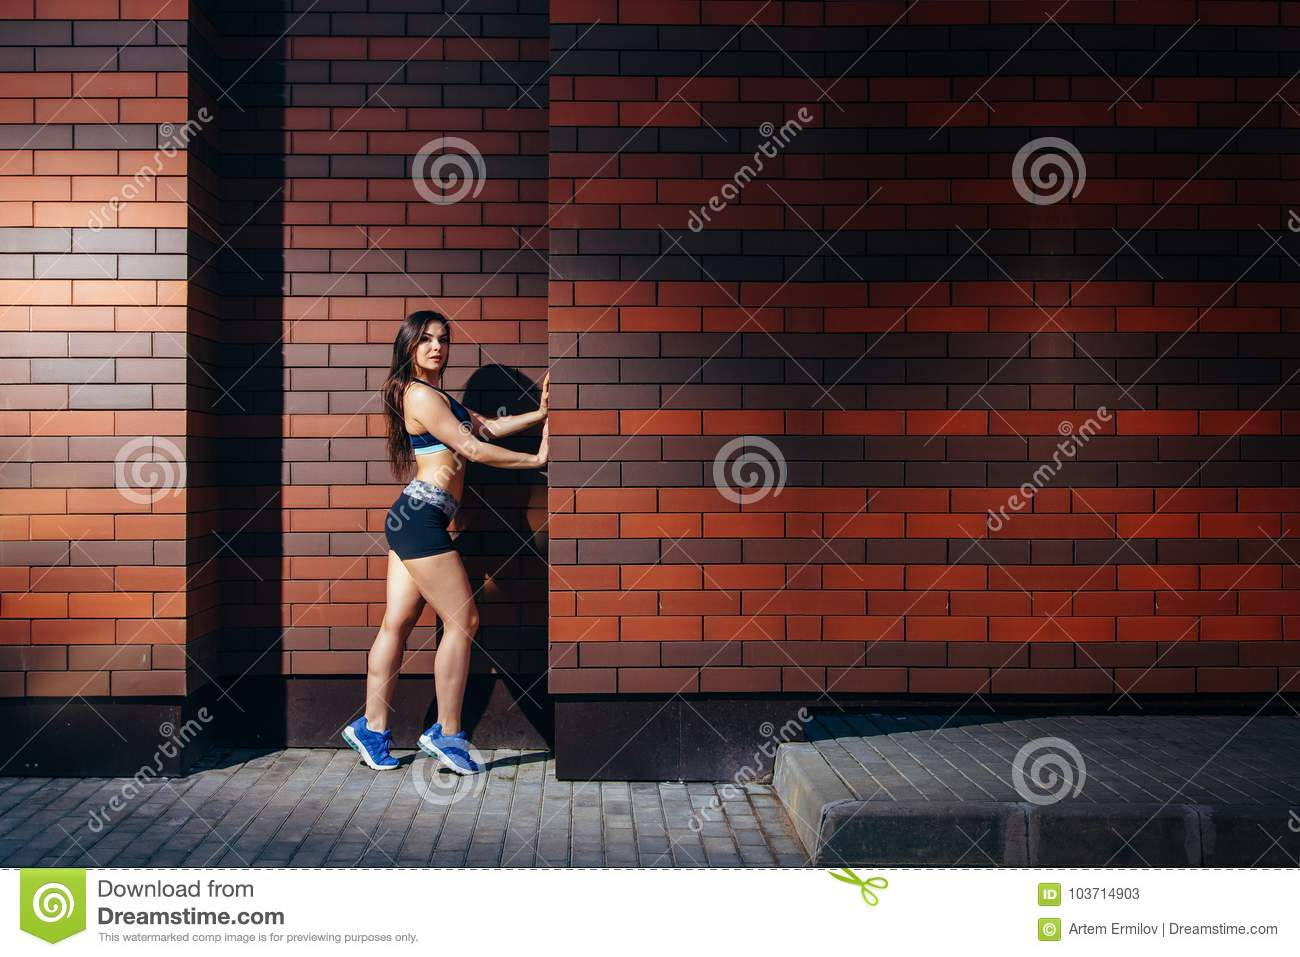 An attractive young woman in sportswear posing against a brick wall background with copyspace. Training outdoors